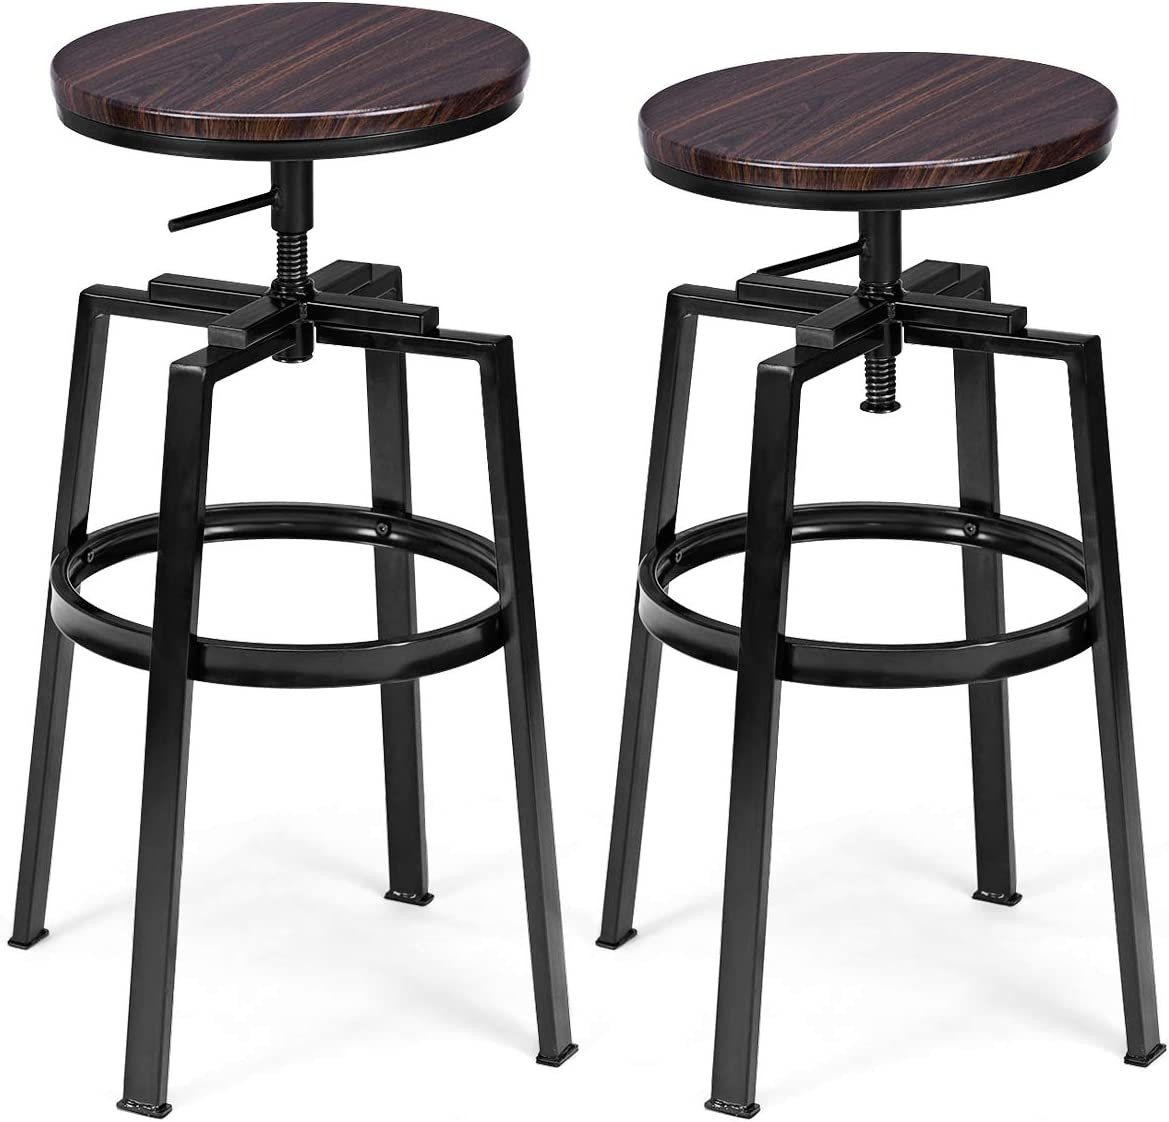 COSTWAY Counter Height Bar Stools, Set of 2, Swivel Adjustable, Round Top Pub Bistro Kitchen Dining Side Chair Mental Barstools with Footrest